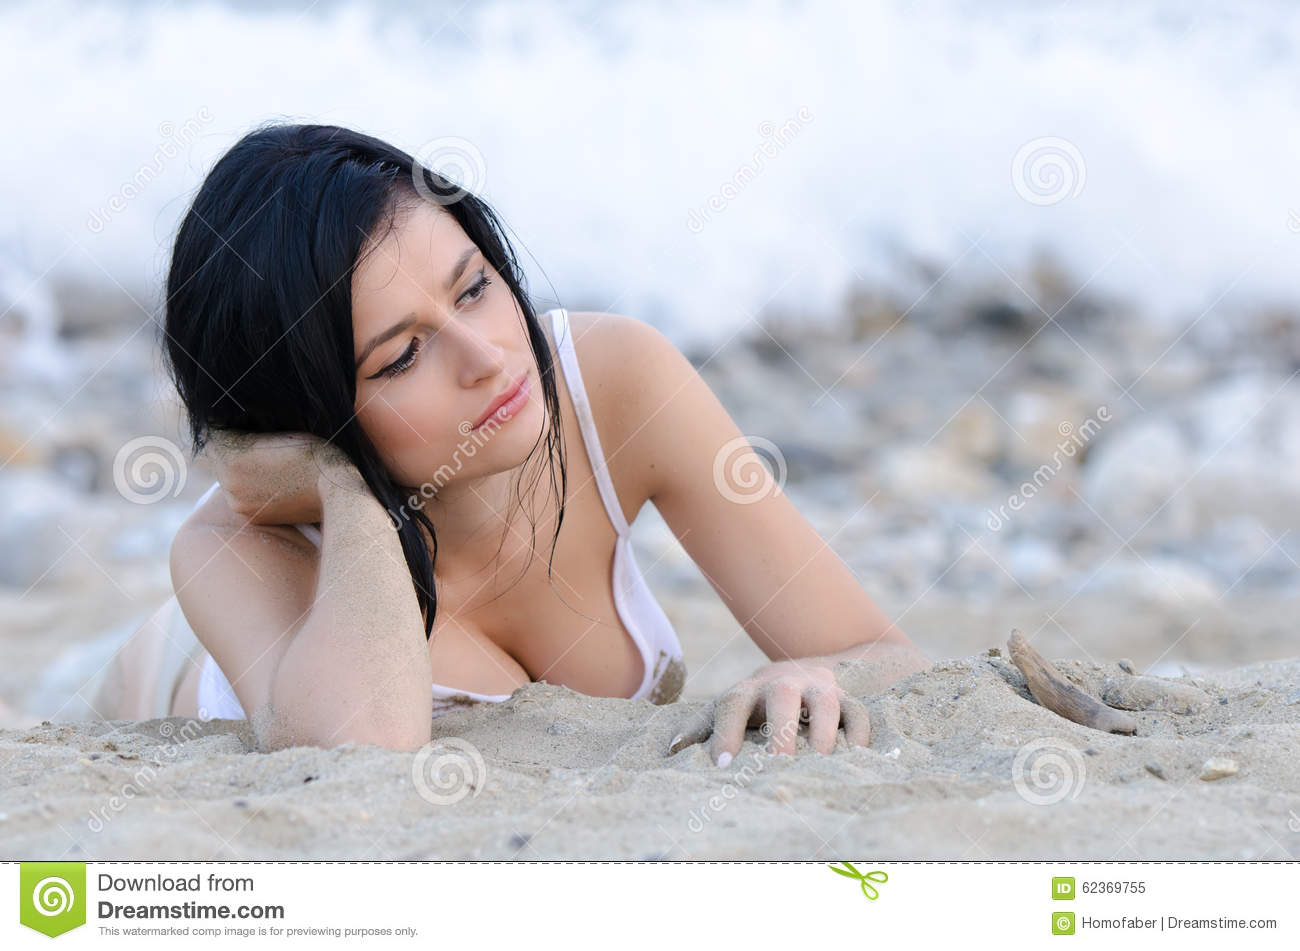 brunette woman, wear wet t-shirt as she lie on sandy beach stock